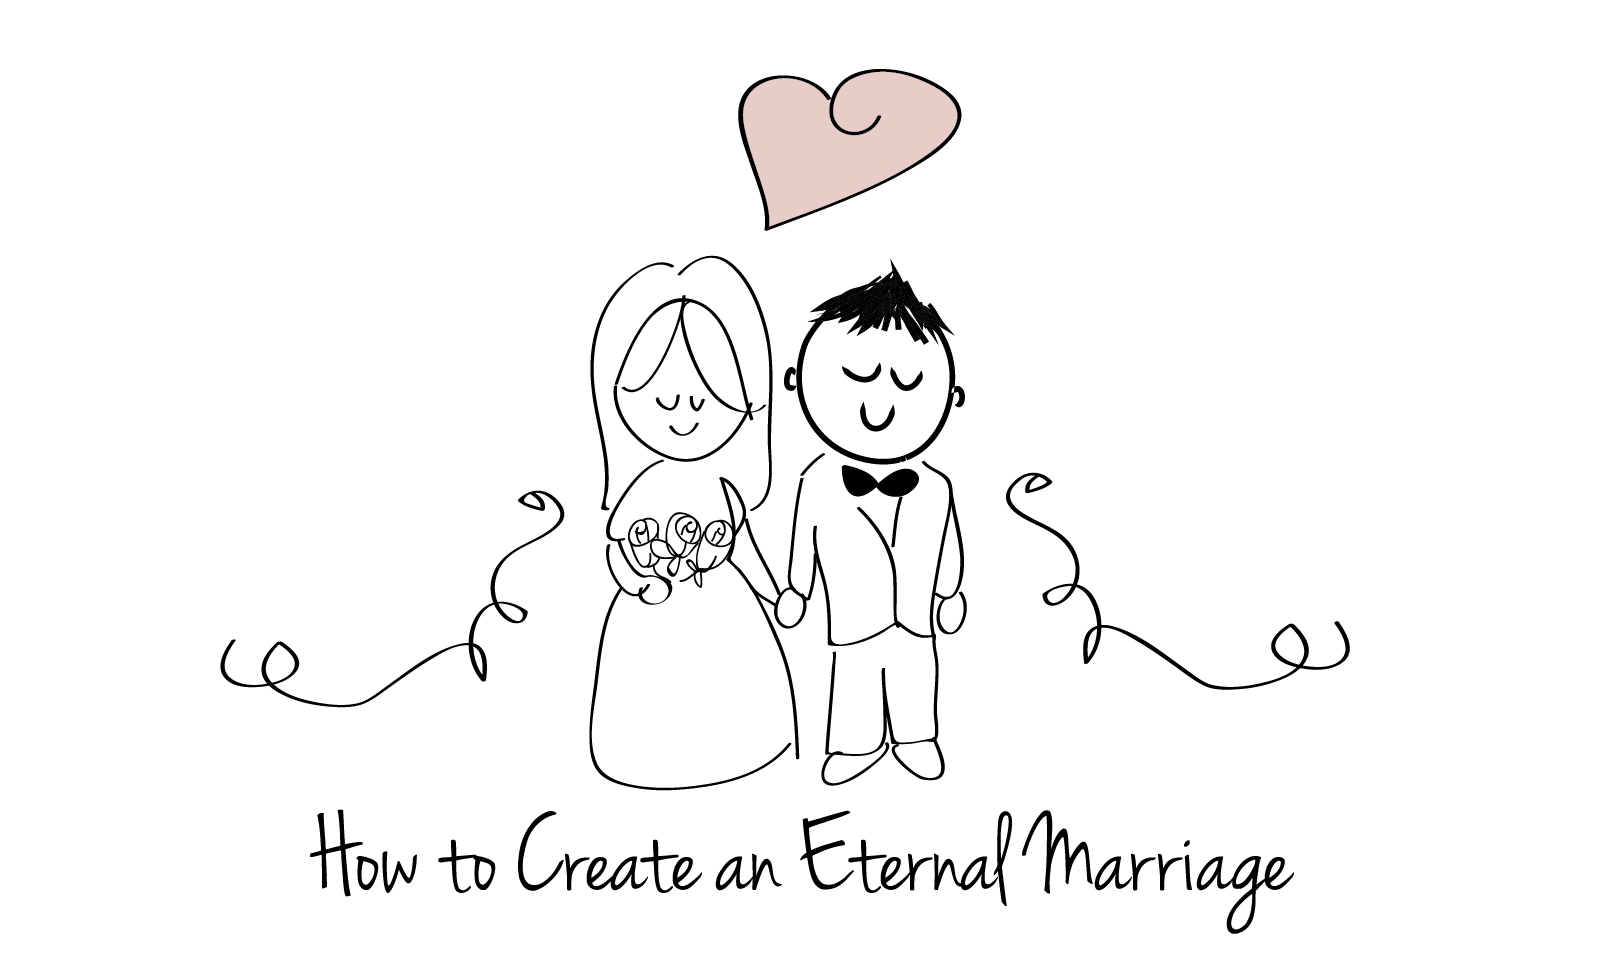 How To Create An Eternal Marriage Worksheet And Treat